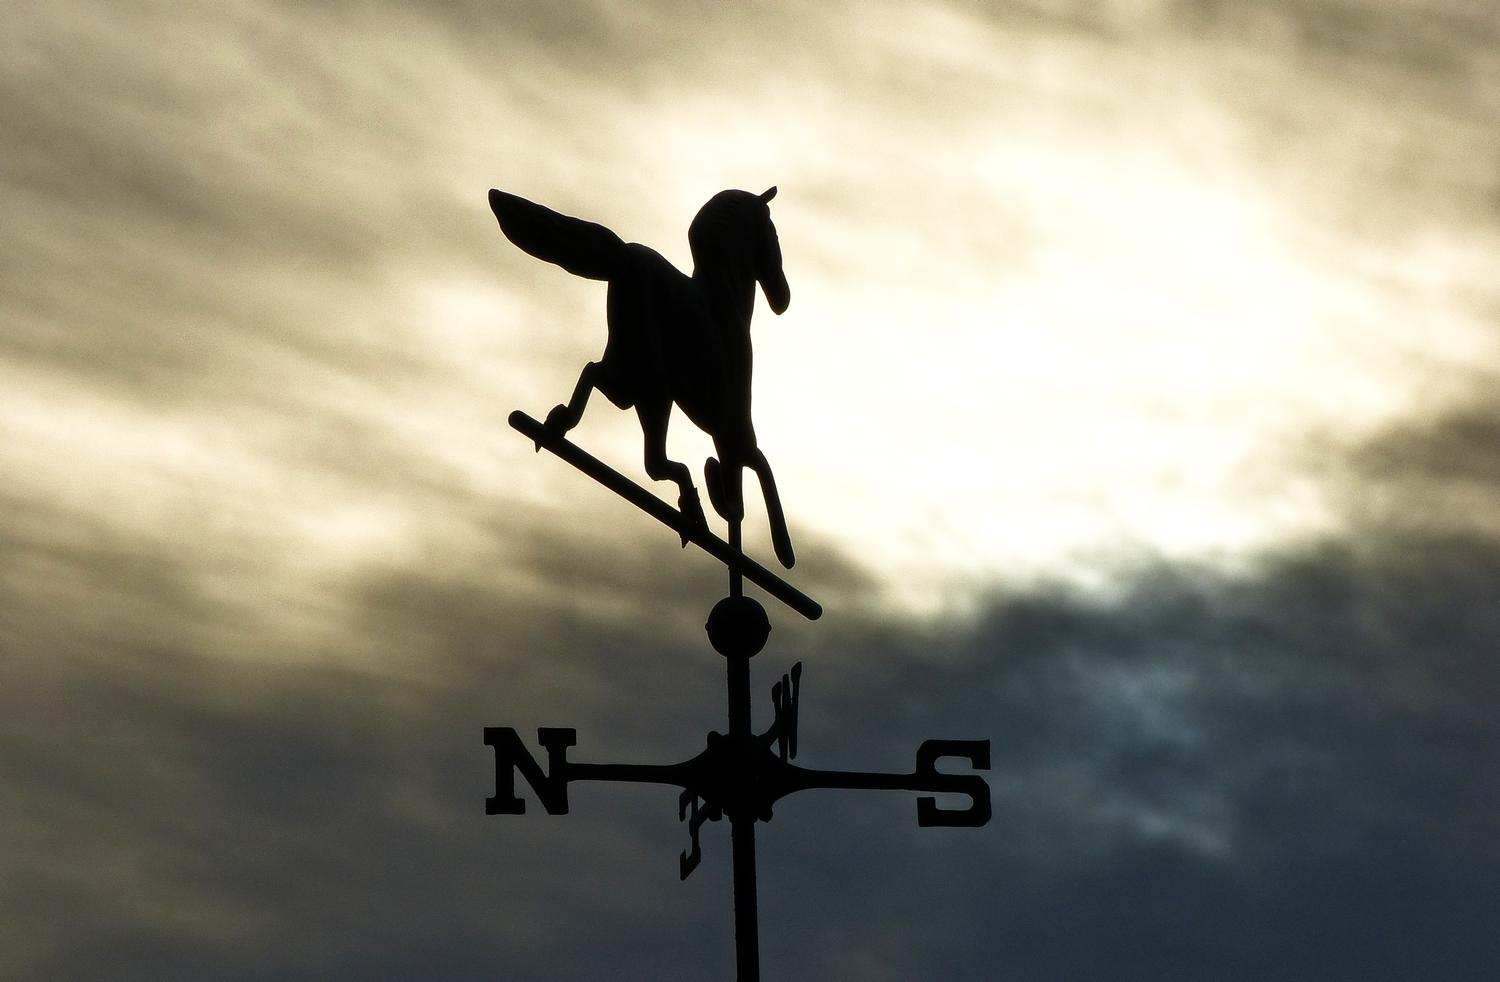 - The horse on this weathervane rides off into the sunrise <br>--- Click to see ORIGINAL --- - -  Panasonic DMC-FZ150 - post processing - Tony Karp, design, art, photography, techno-impressionist, techno-impressionism, aerial photography , drone , drones , dji , mavic pro , video , 3D printing - Books -